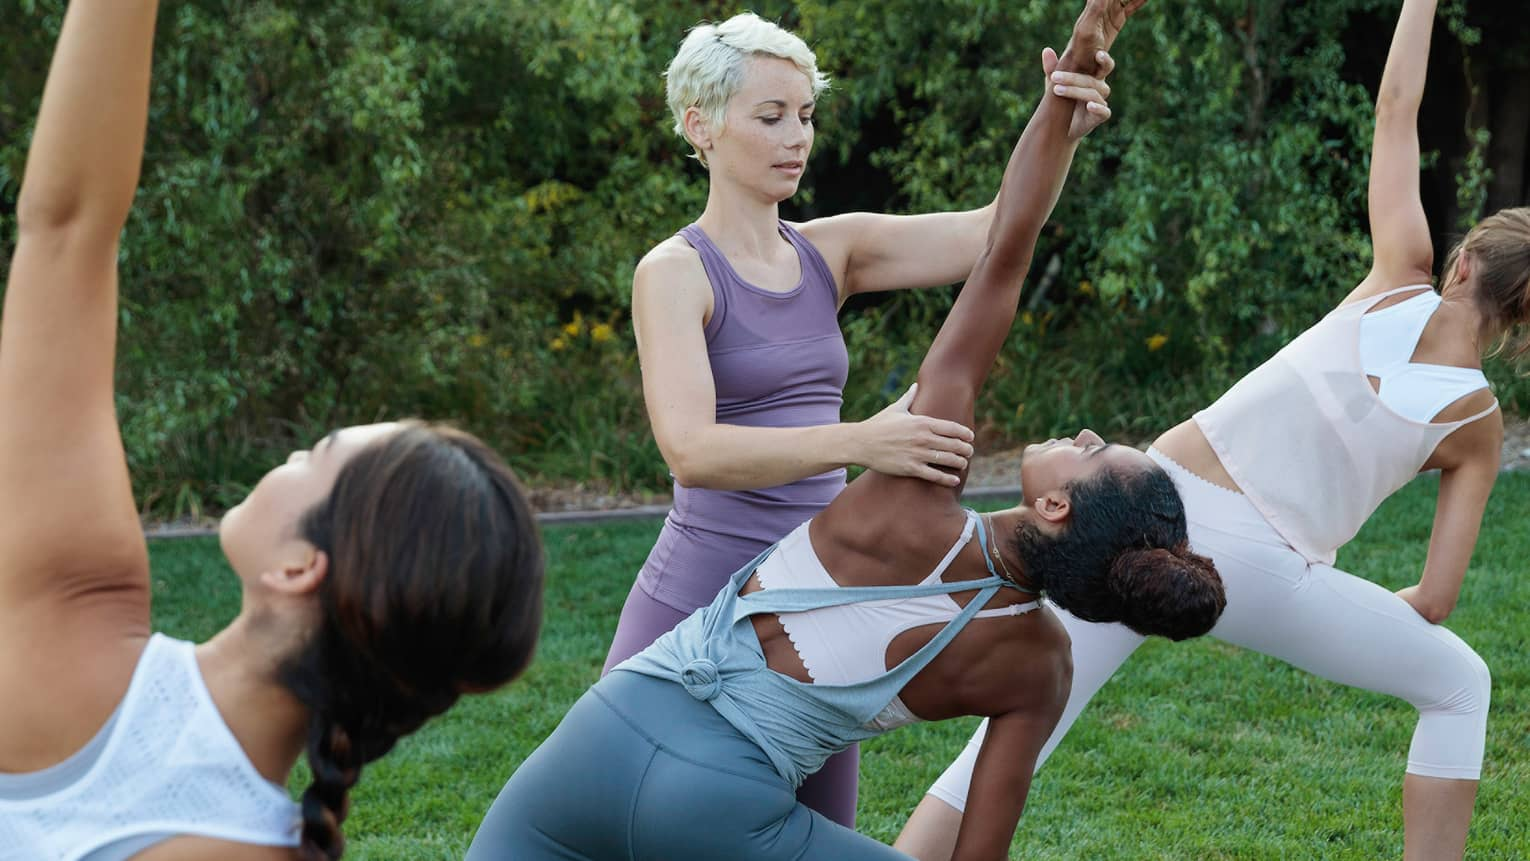 Fitness instructor assists woman with yoga pose on green lawn